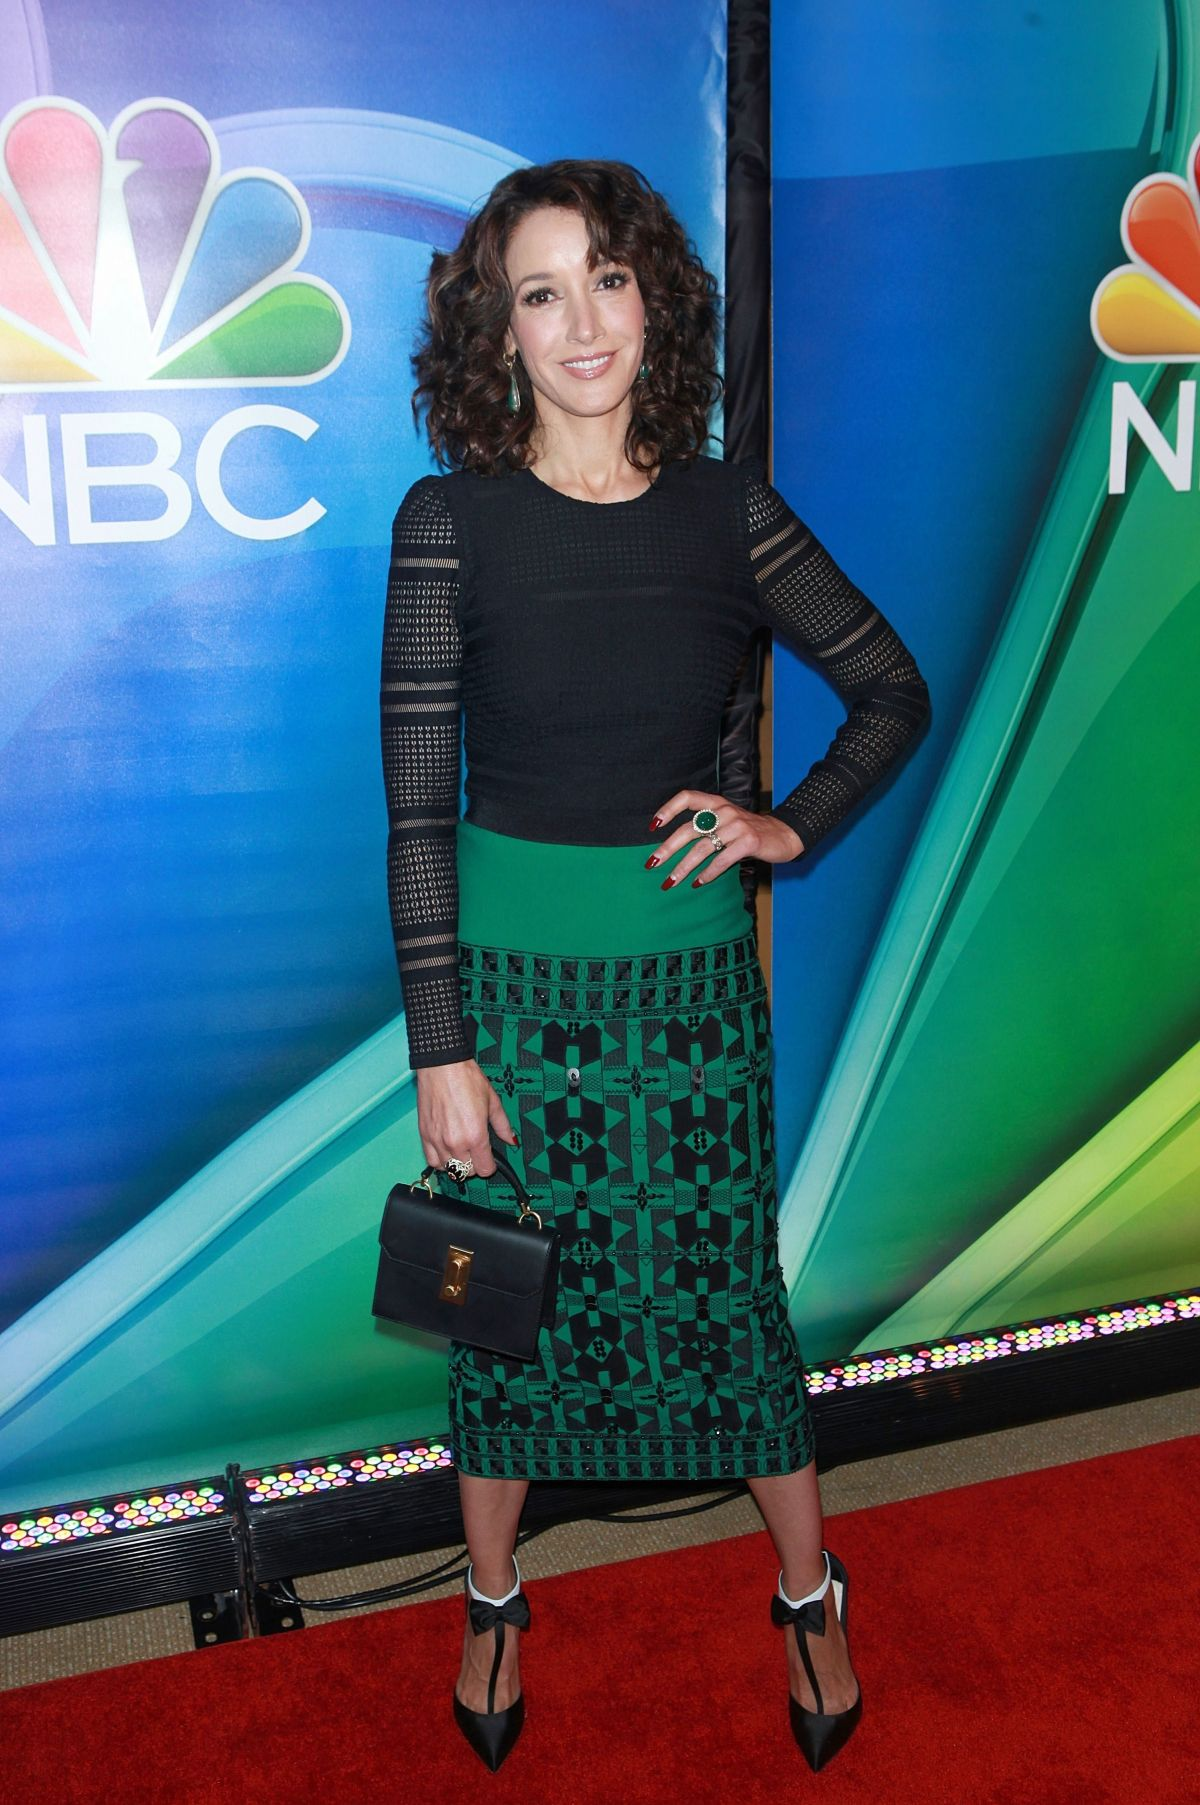 JENNIFER BEALS at NBC Mid-season Press Day in New York 03/02/2017